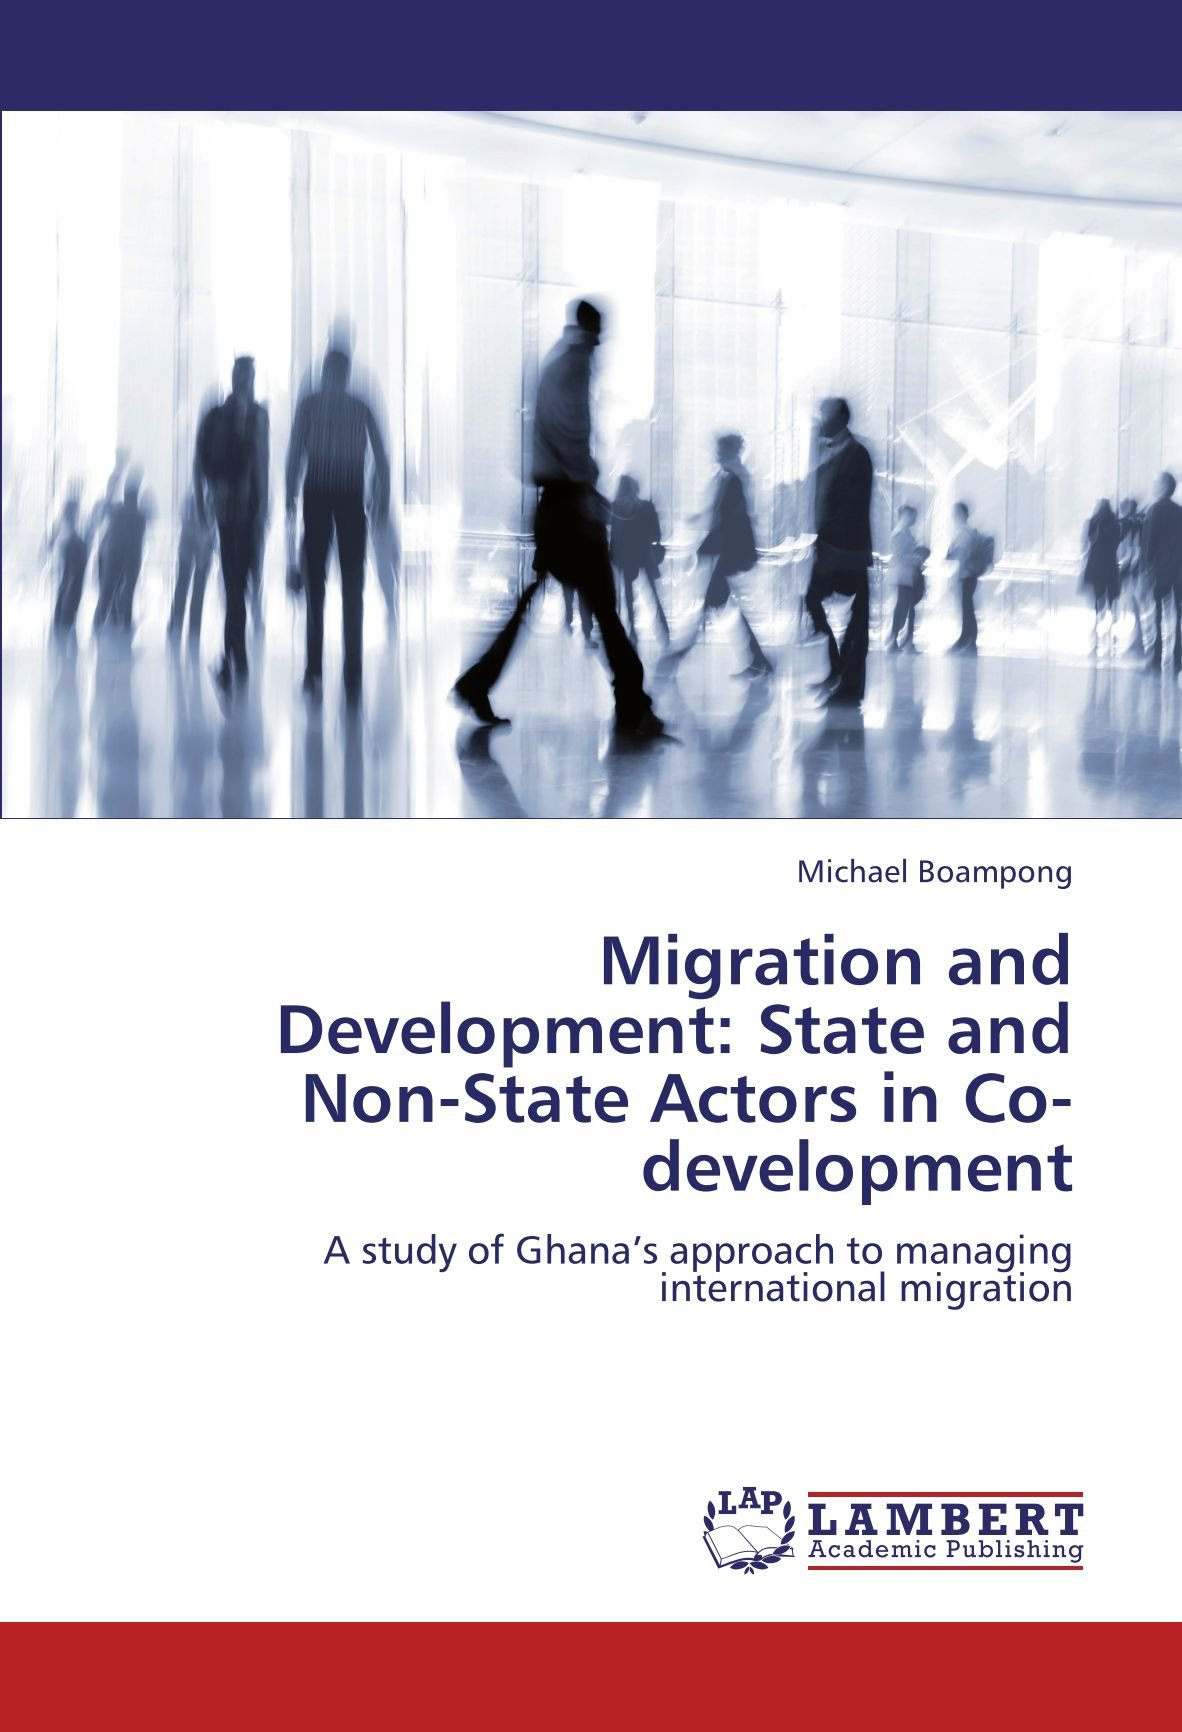 Read Online Migration and Development: State and Non-State Actors in Co-development: A study of Ghana's approach to managing international migration pdf